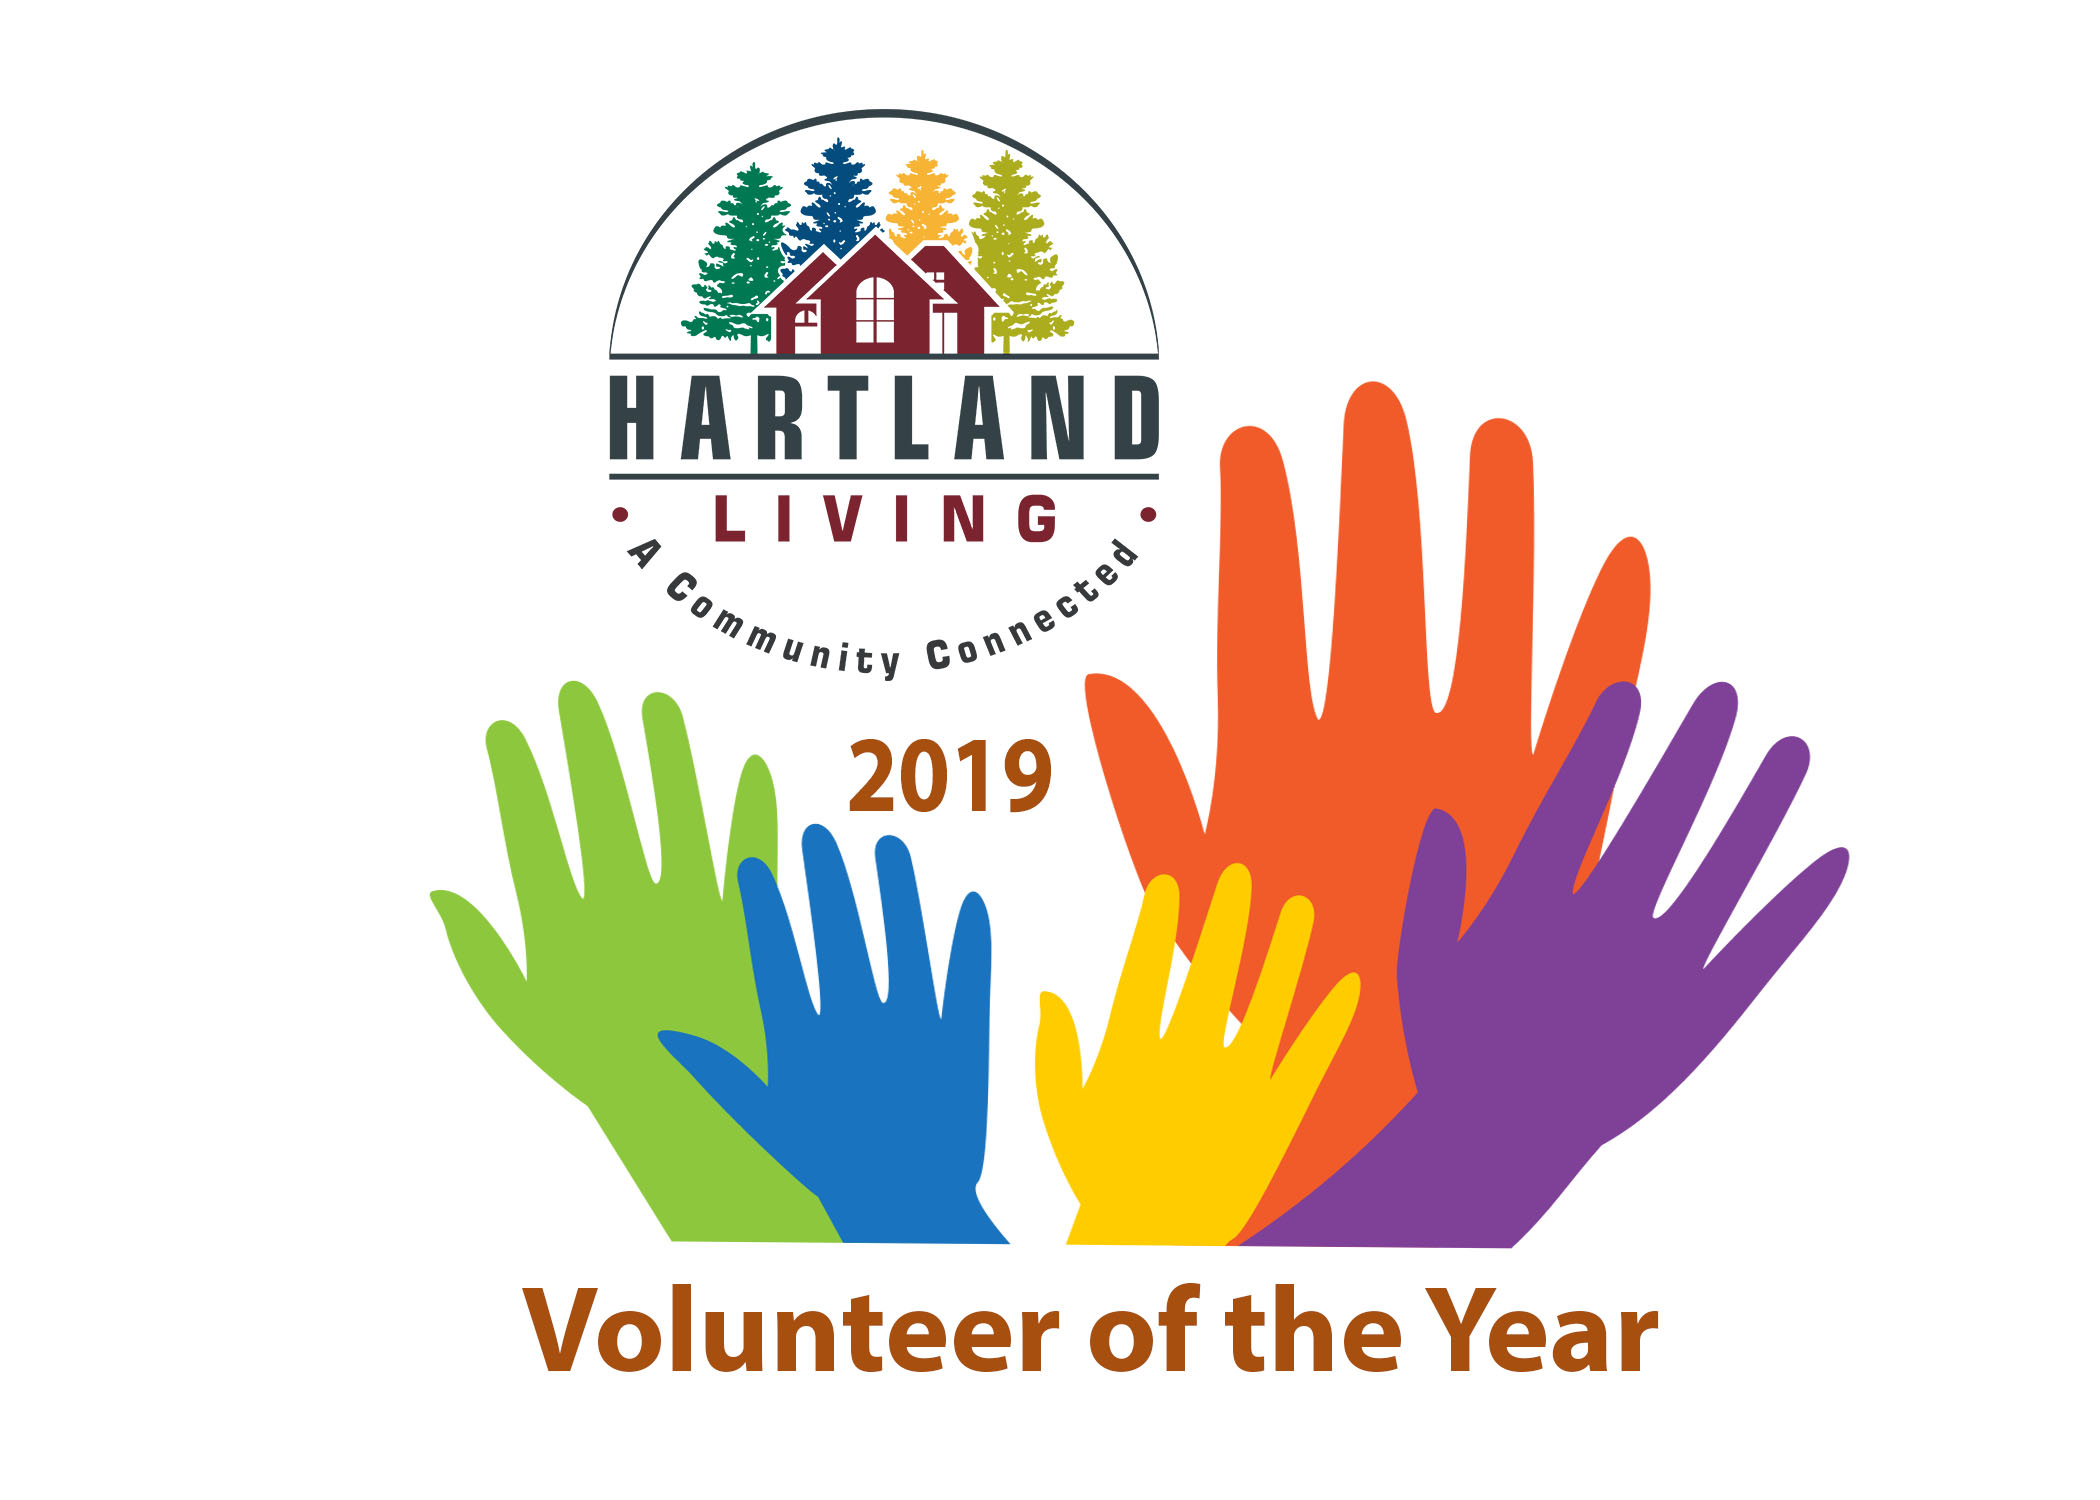 Hartland Living is Seeking Votes for 2019 Volunteer of the Year